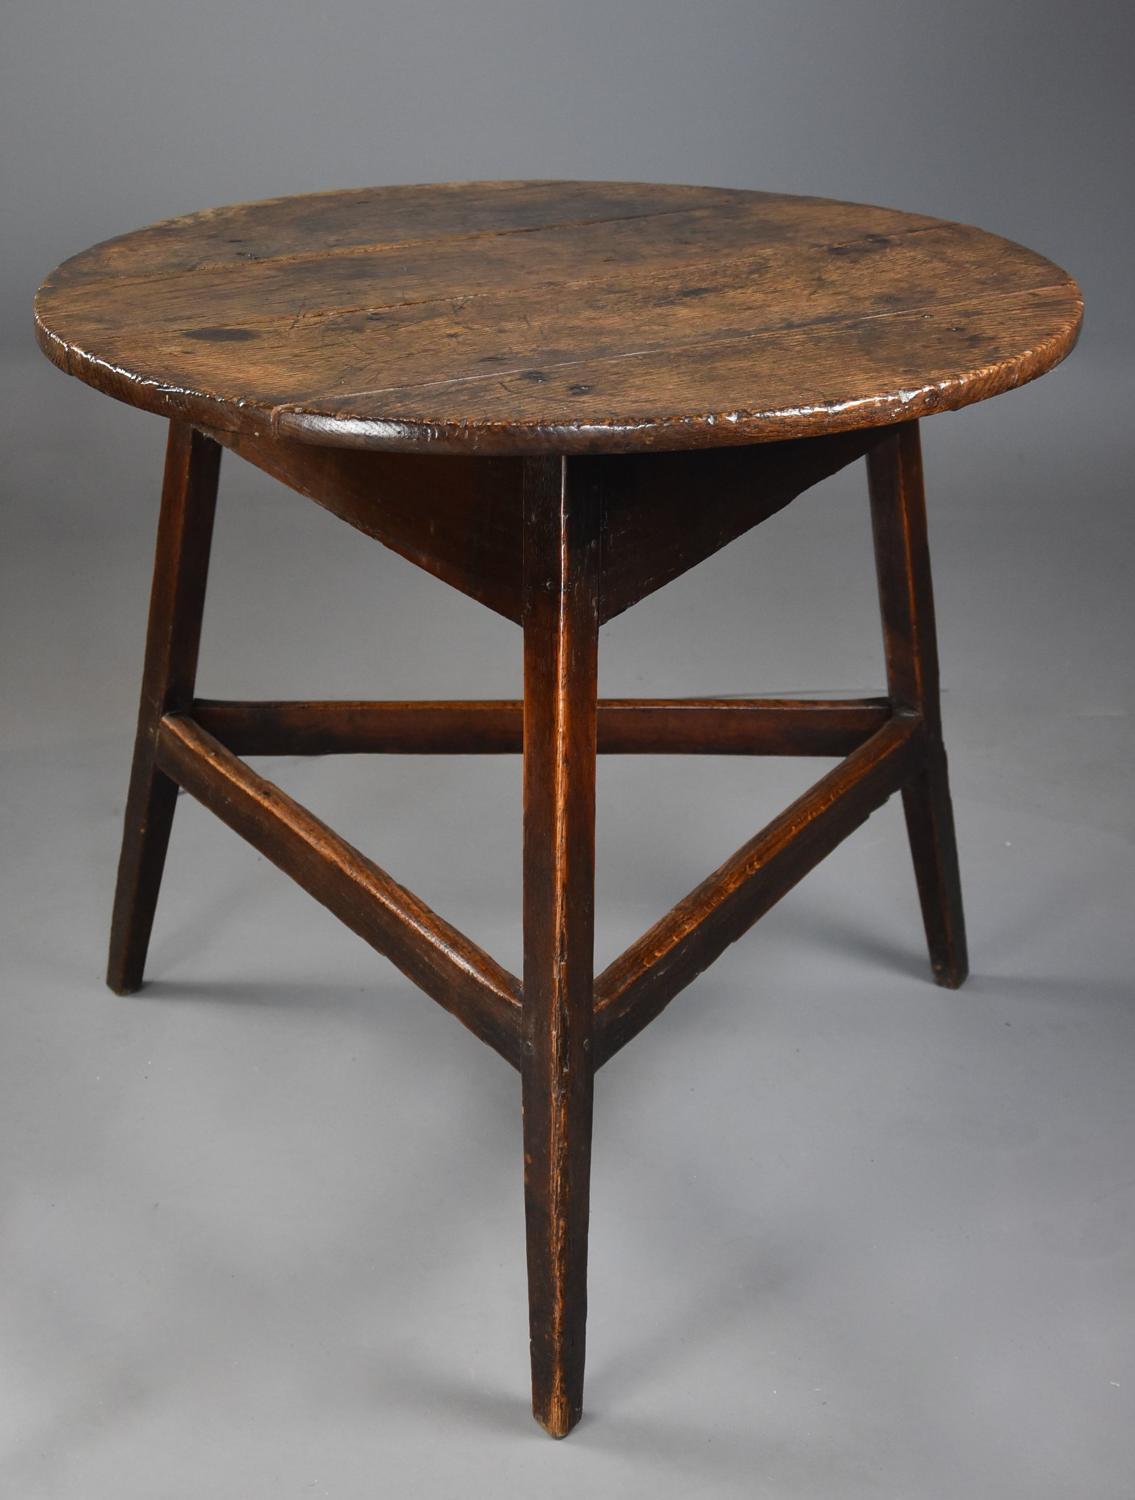 Early/mid 19th century oak cricket table with fine patina